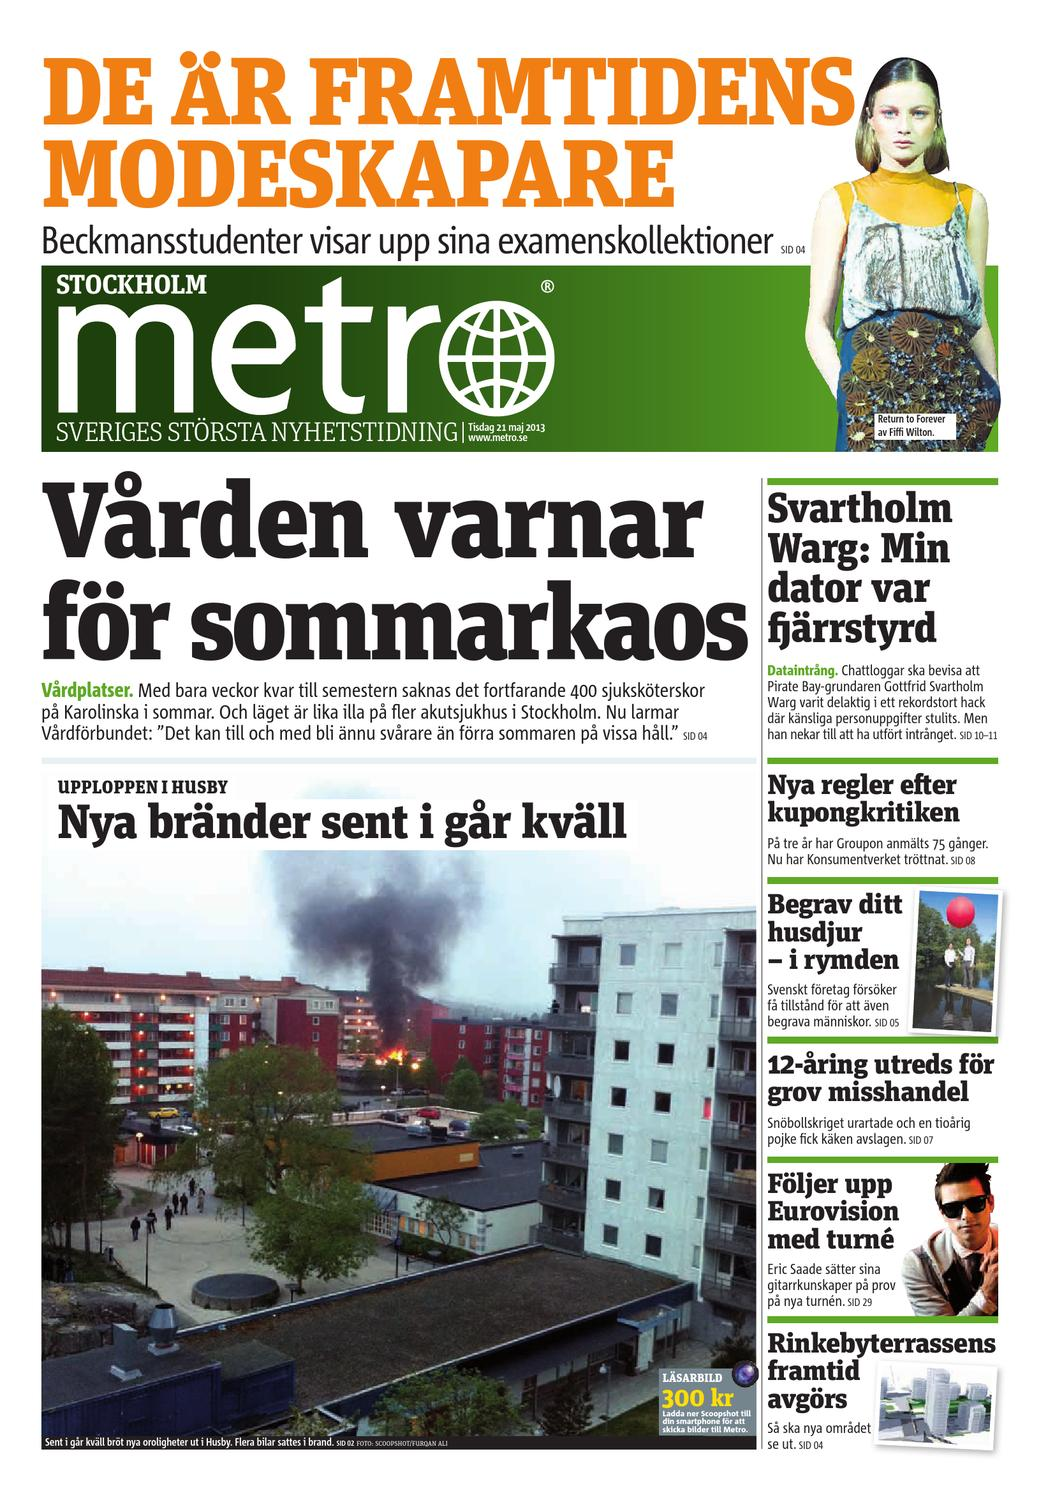 super popular f770c 959f0 20130521 se stockholm by Metro Sweden - issuu